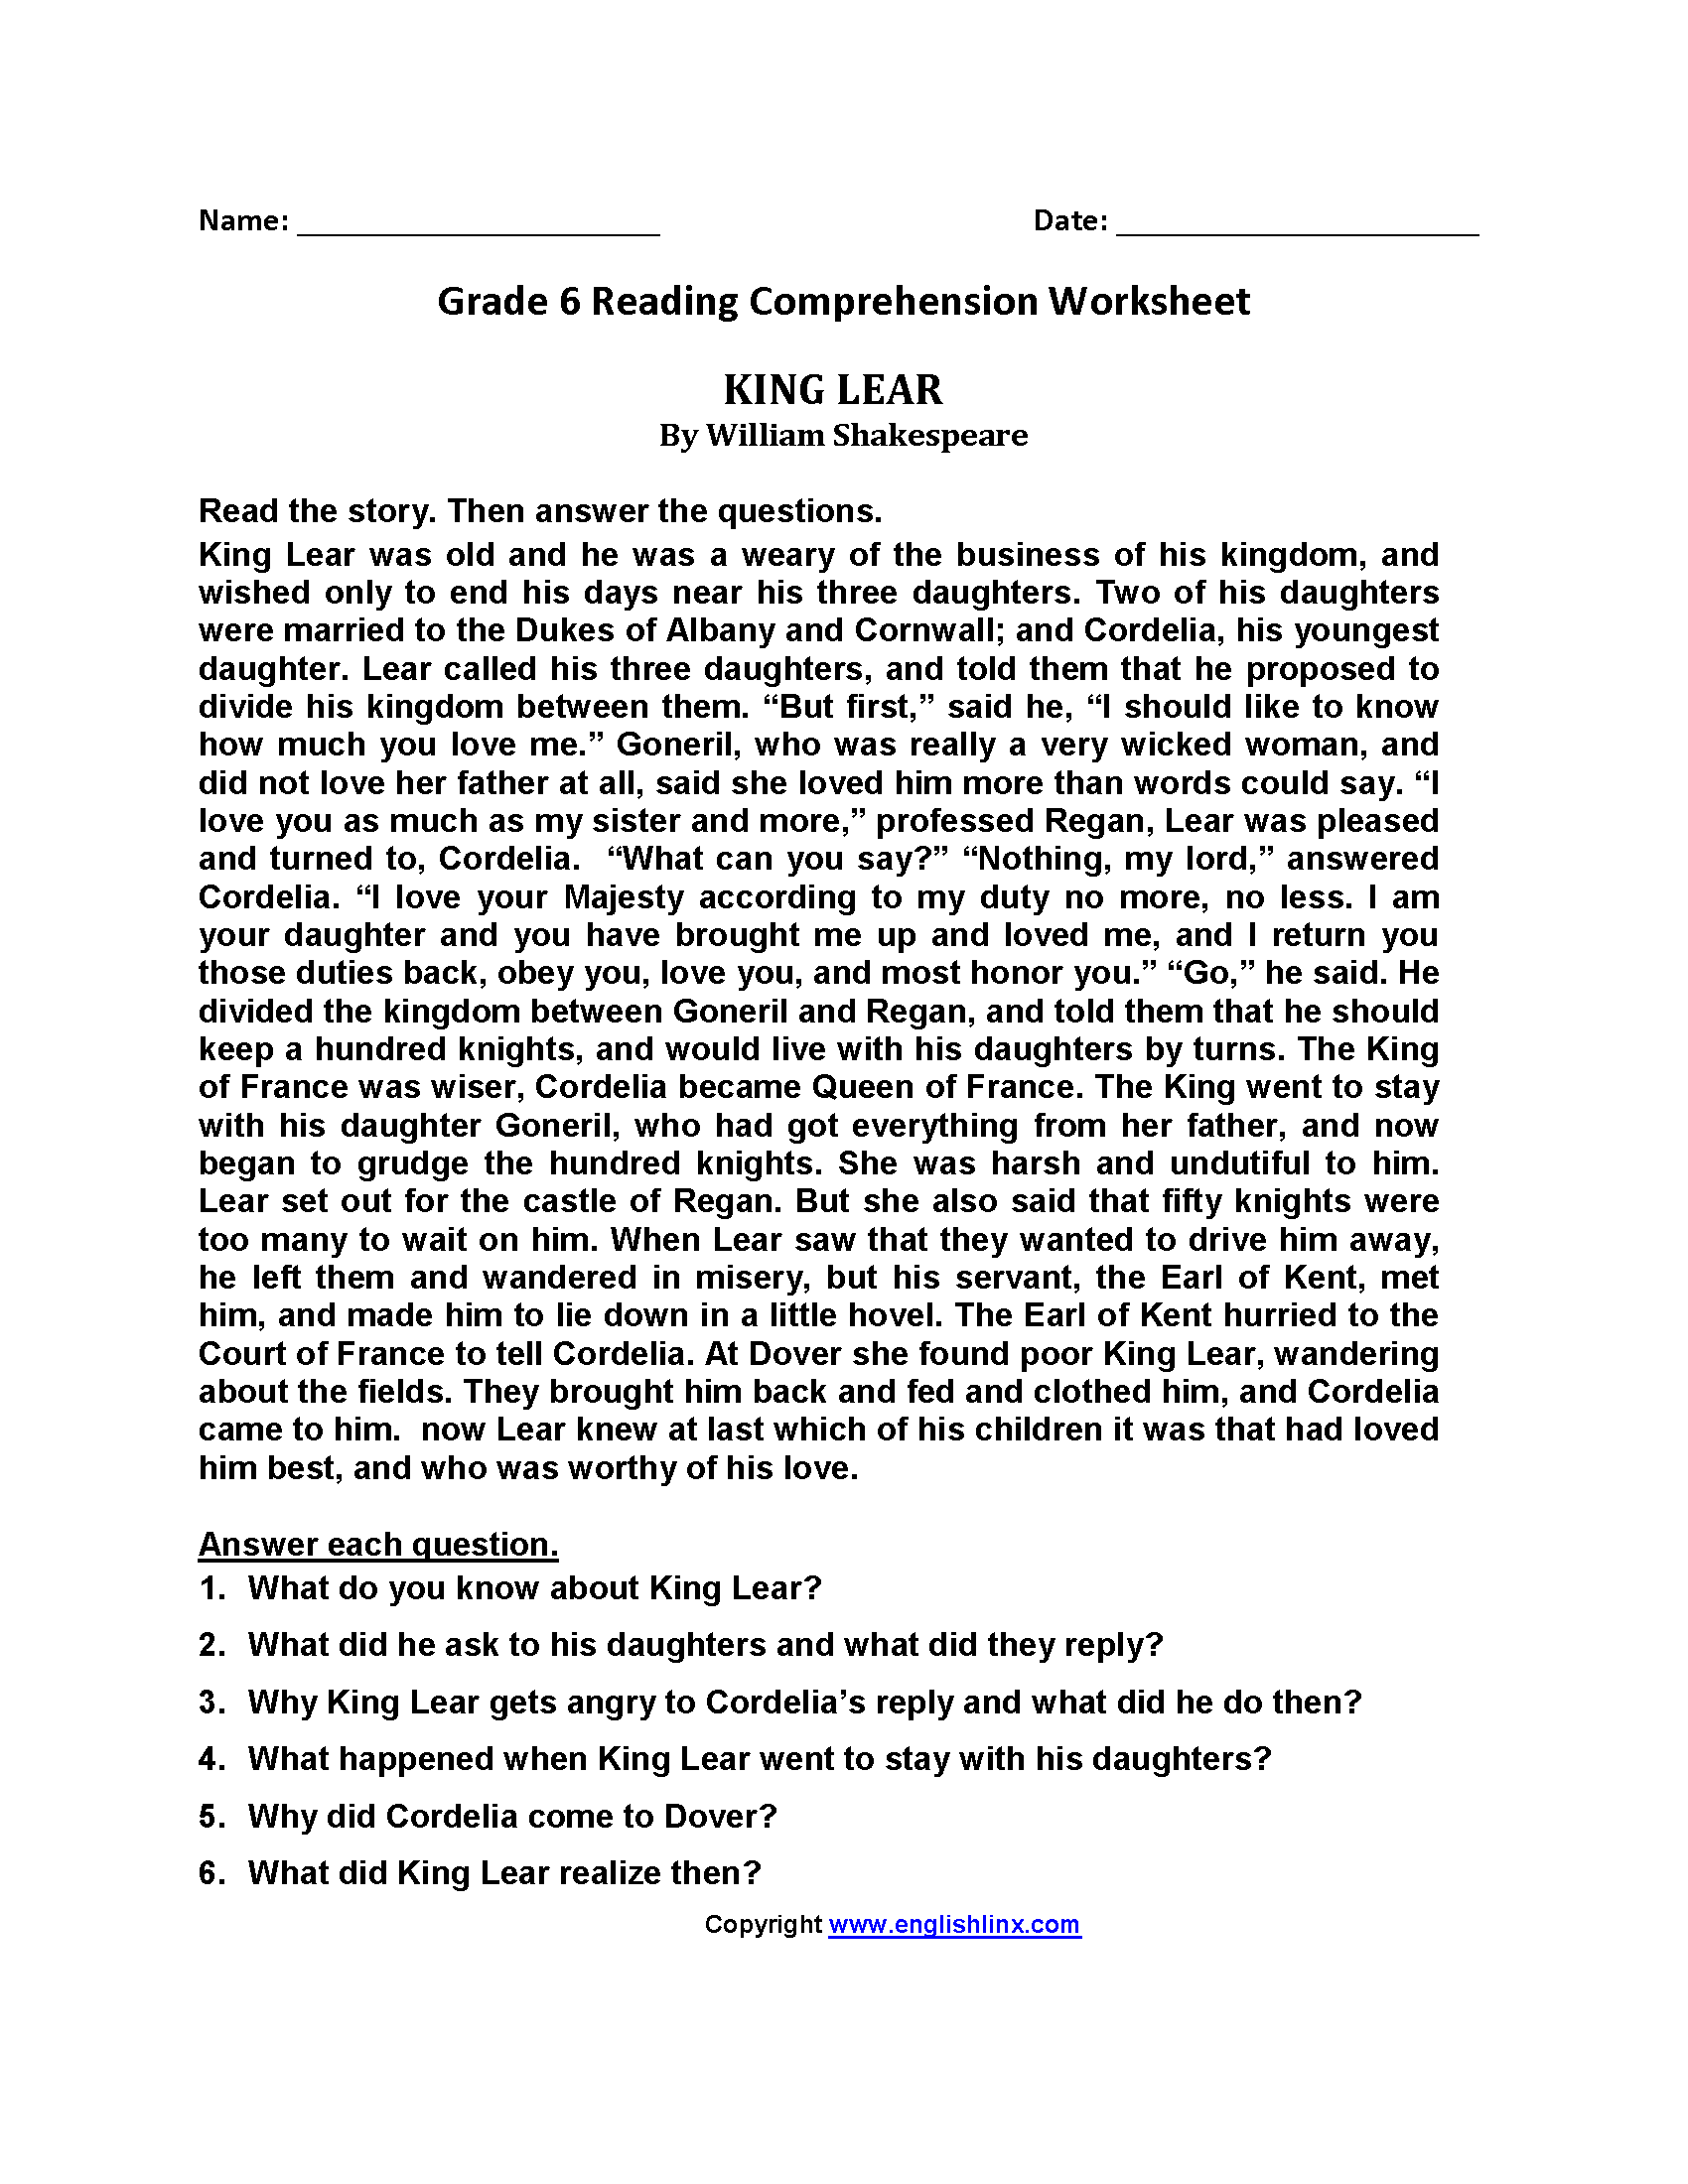 King Lear Sixth Grade Reading Worksheets